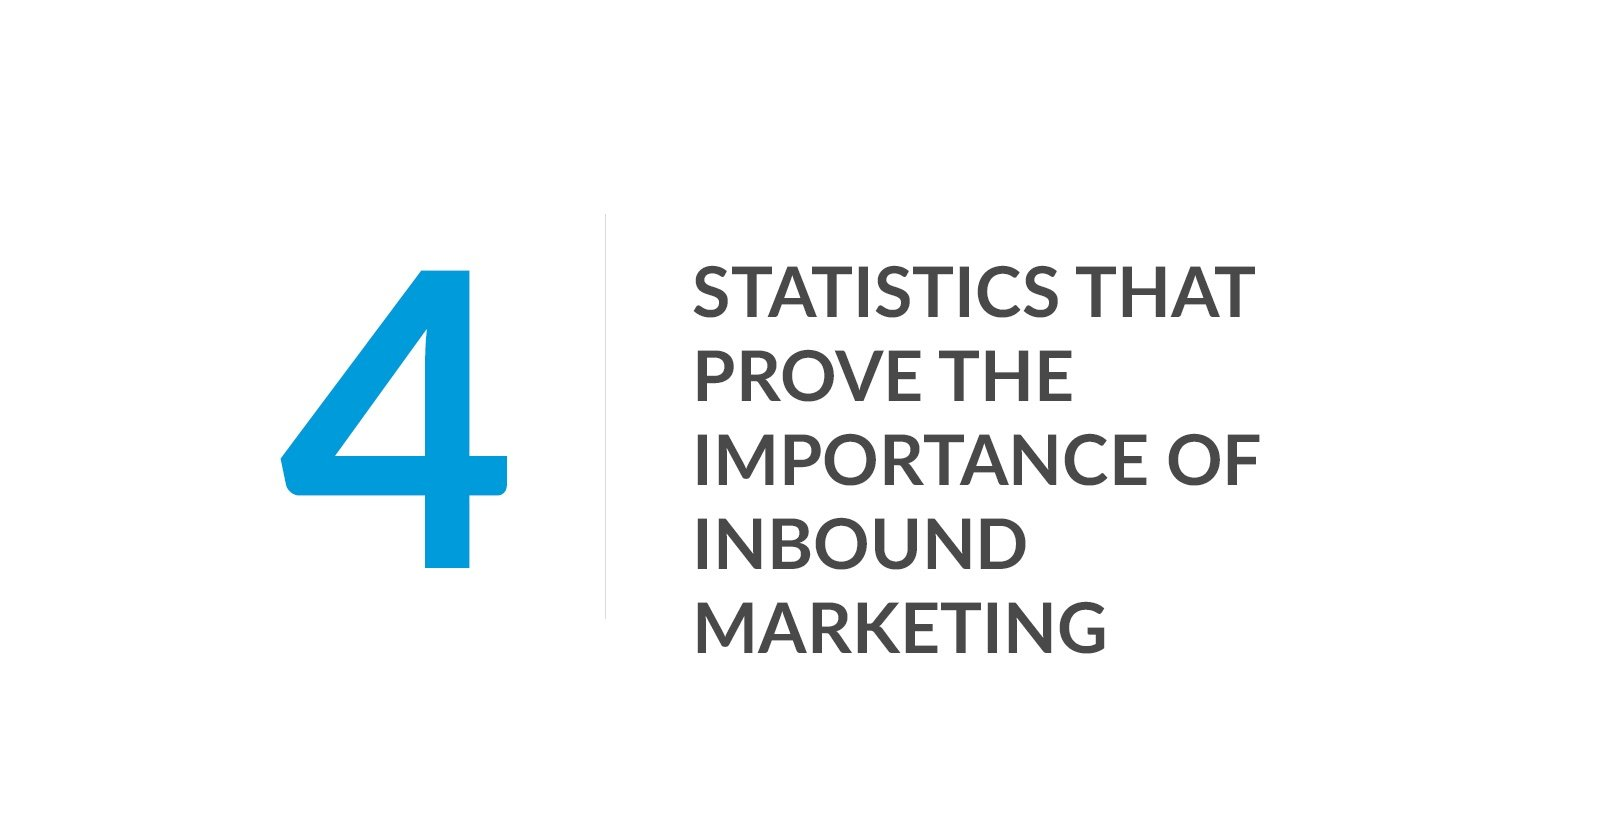 4-Statistics-That-Prove-the-Importance-of-Inbound-Marketing.jpg?noresize